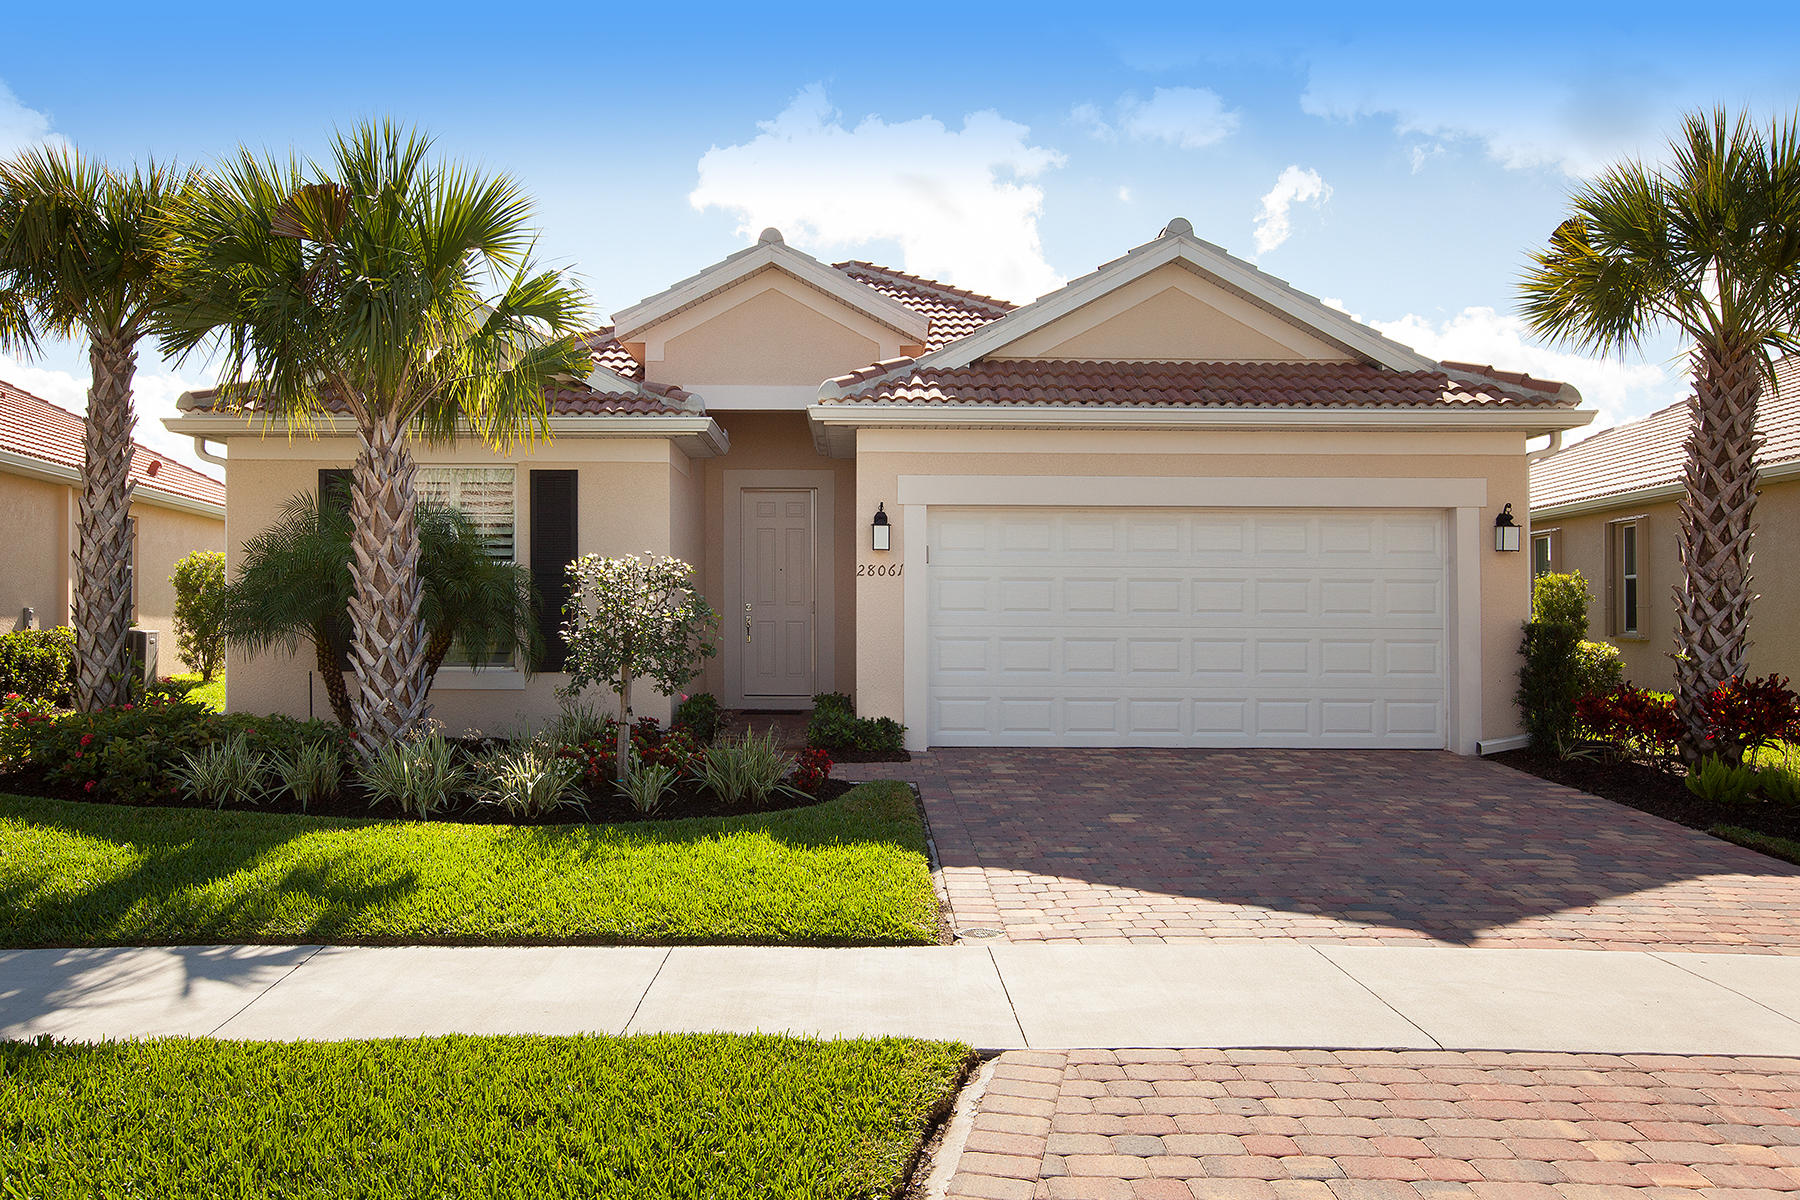 Additional photo for property listing at Bonita Springs 28061  Quiet Water Way,  Bonita Springs, Florida 34135 United States